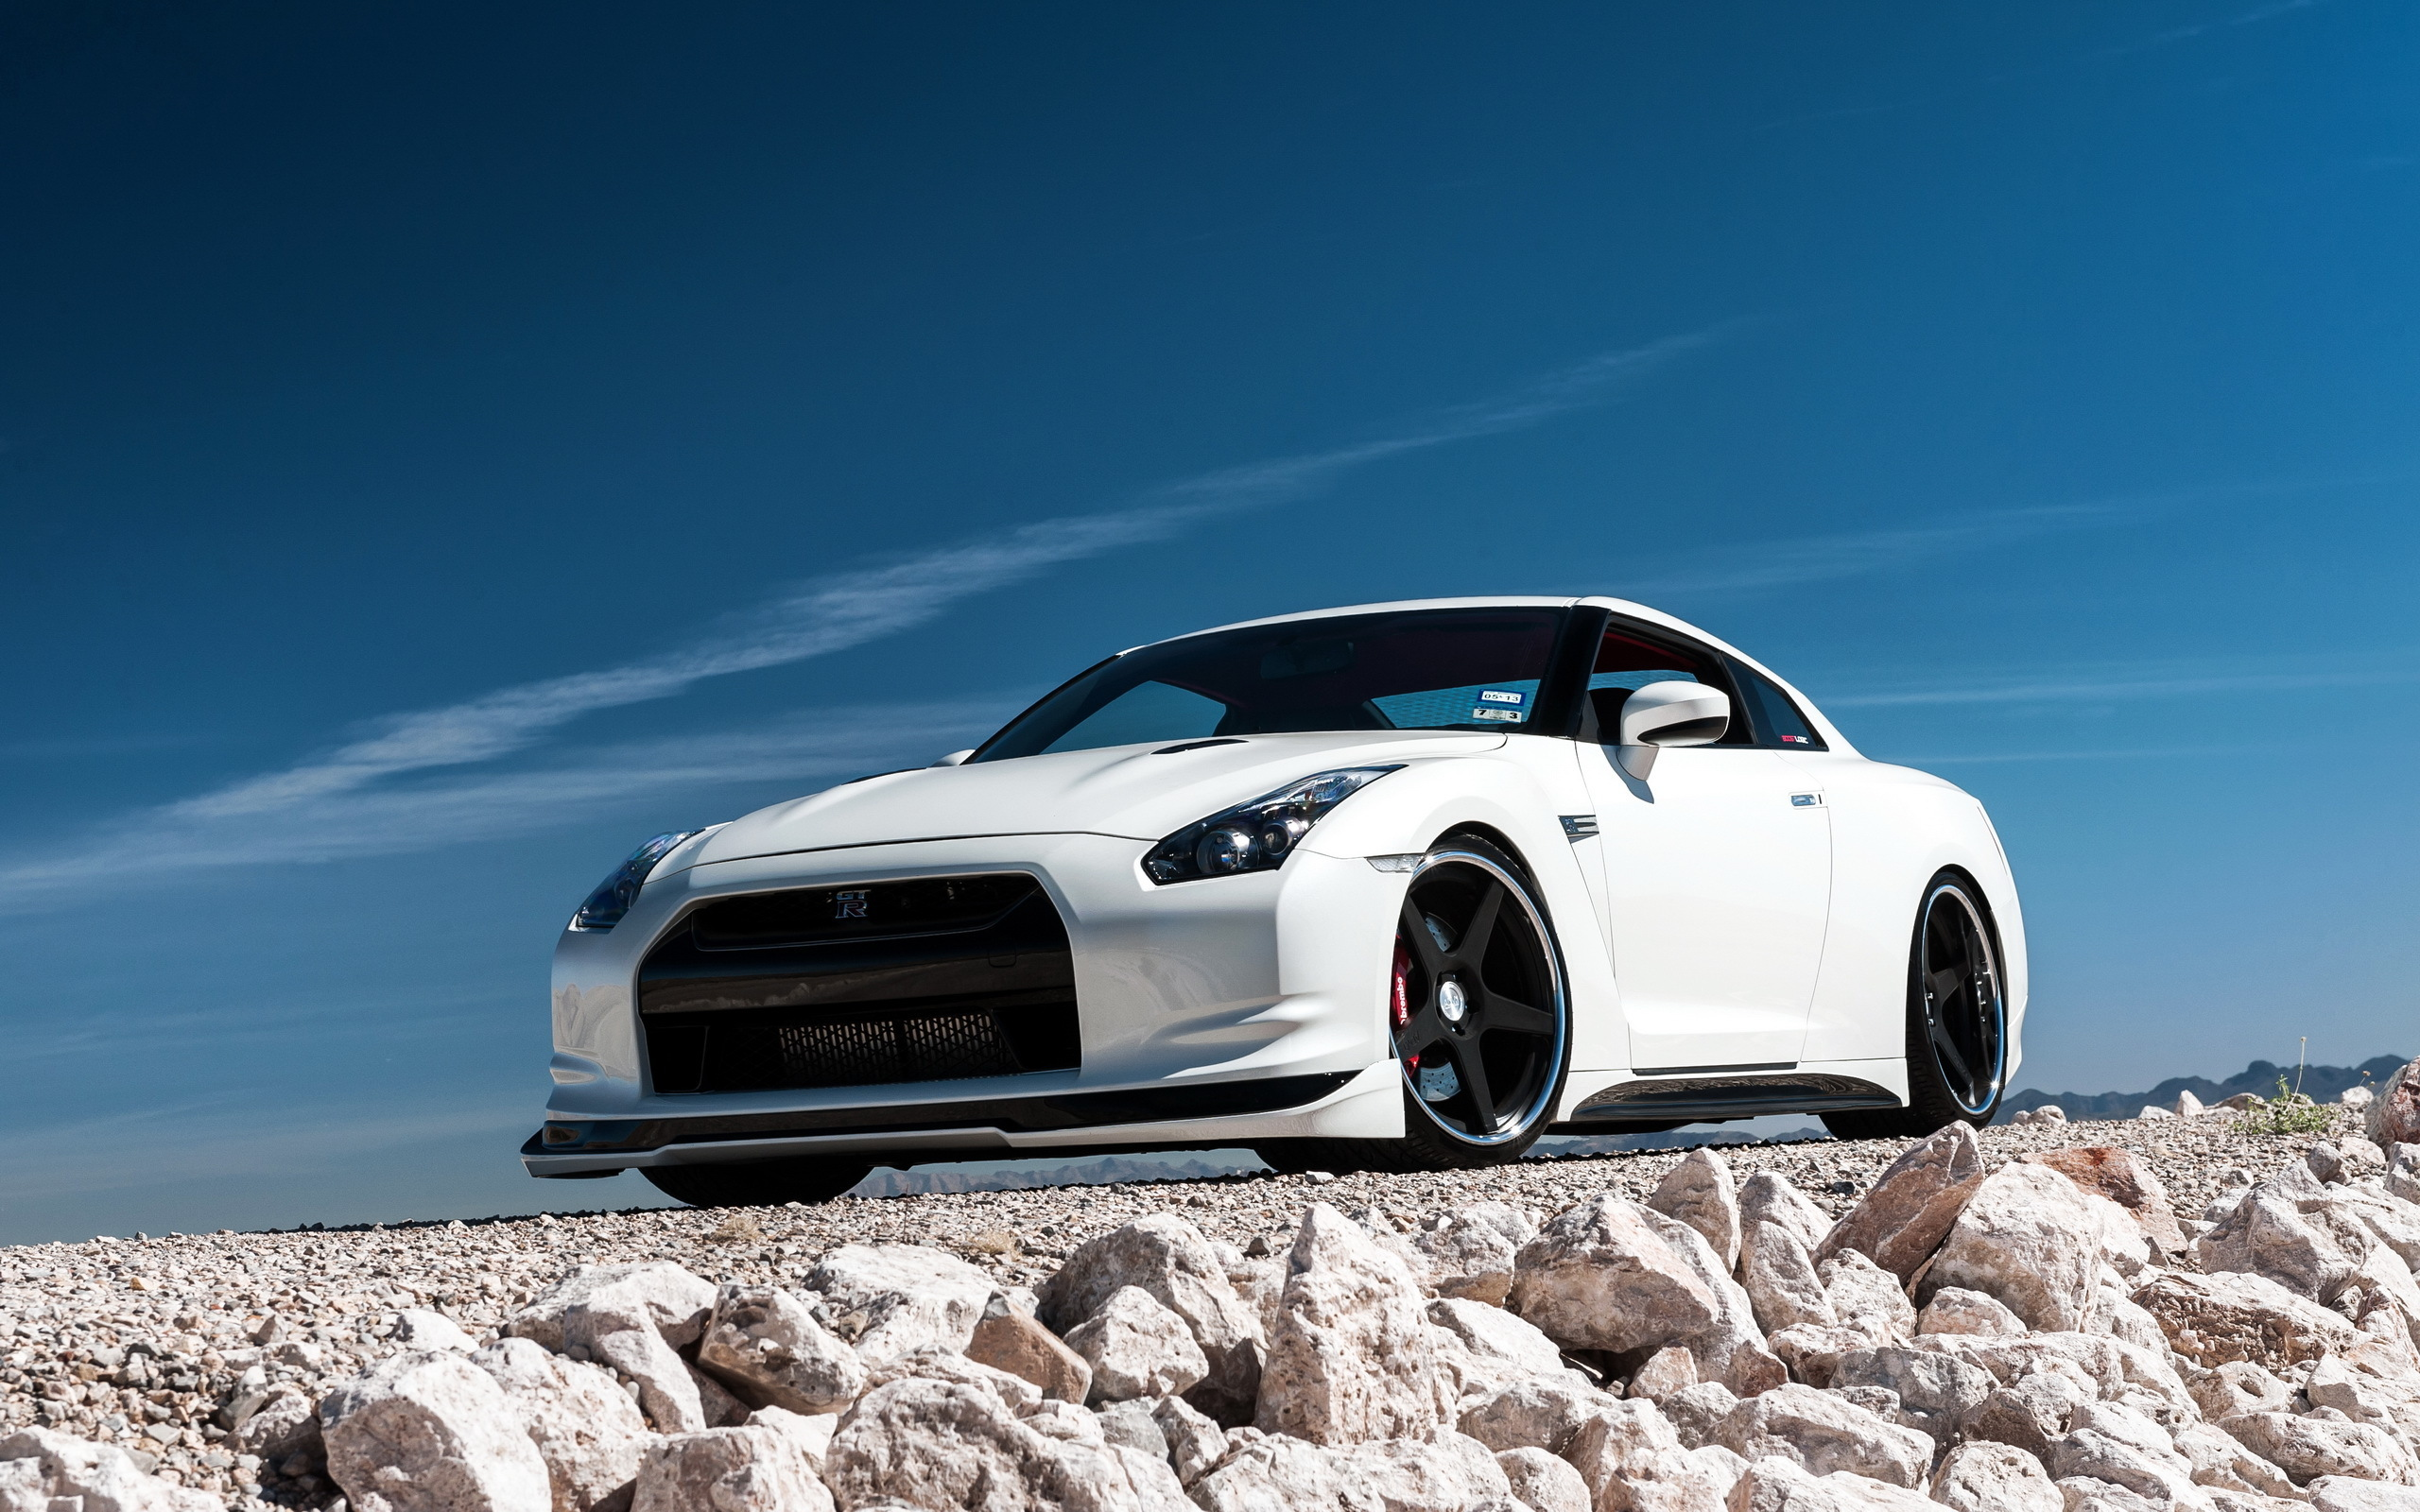 Nissan gtr wallpapers pictures images - Nissan gtr hd wallpaper ...